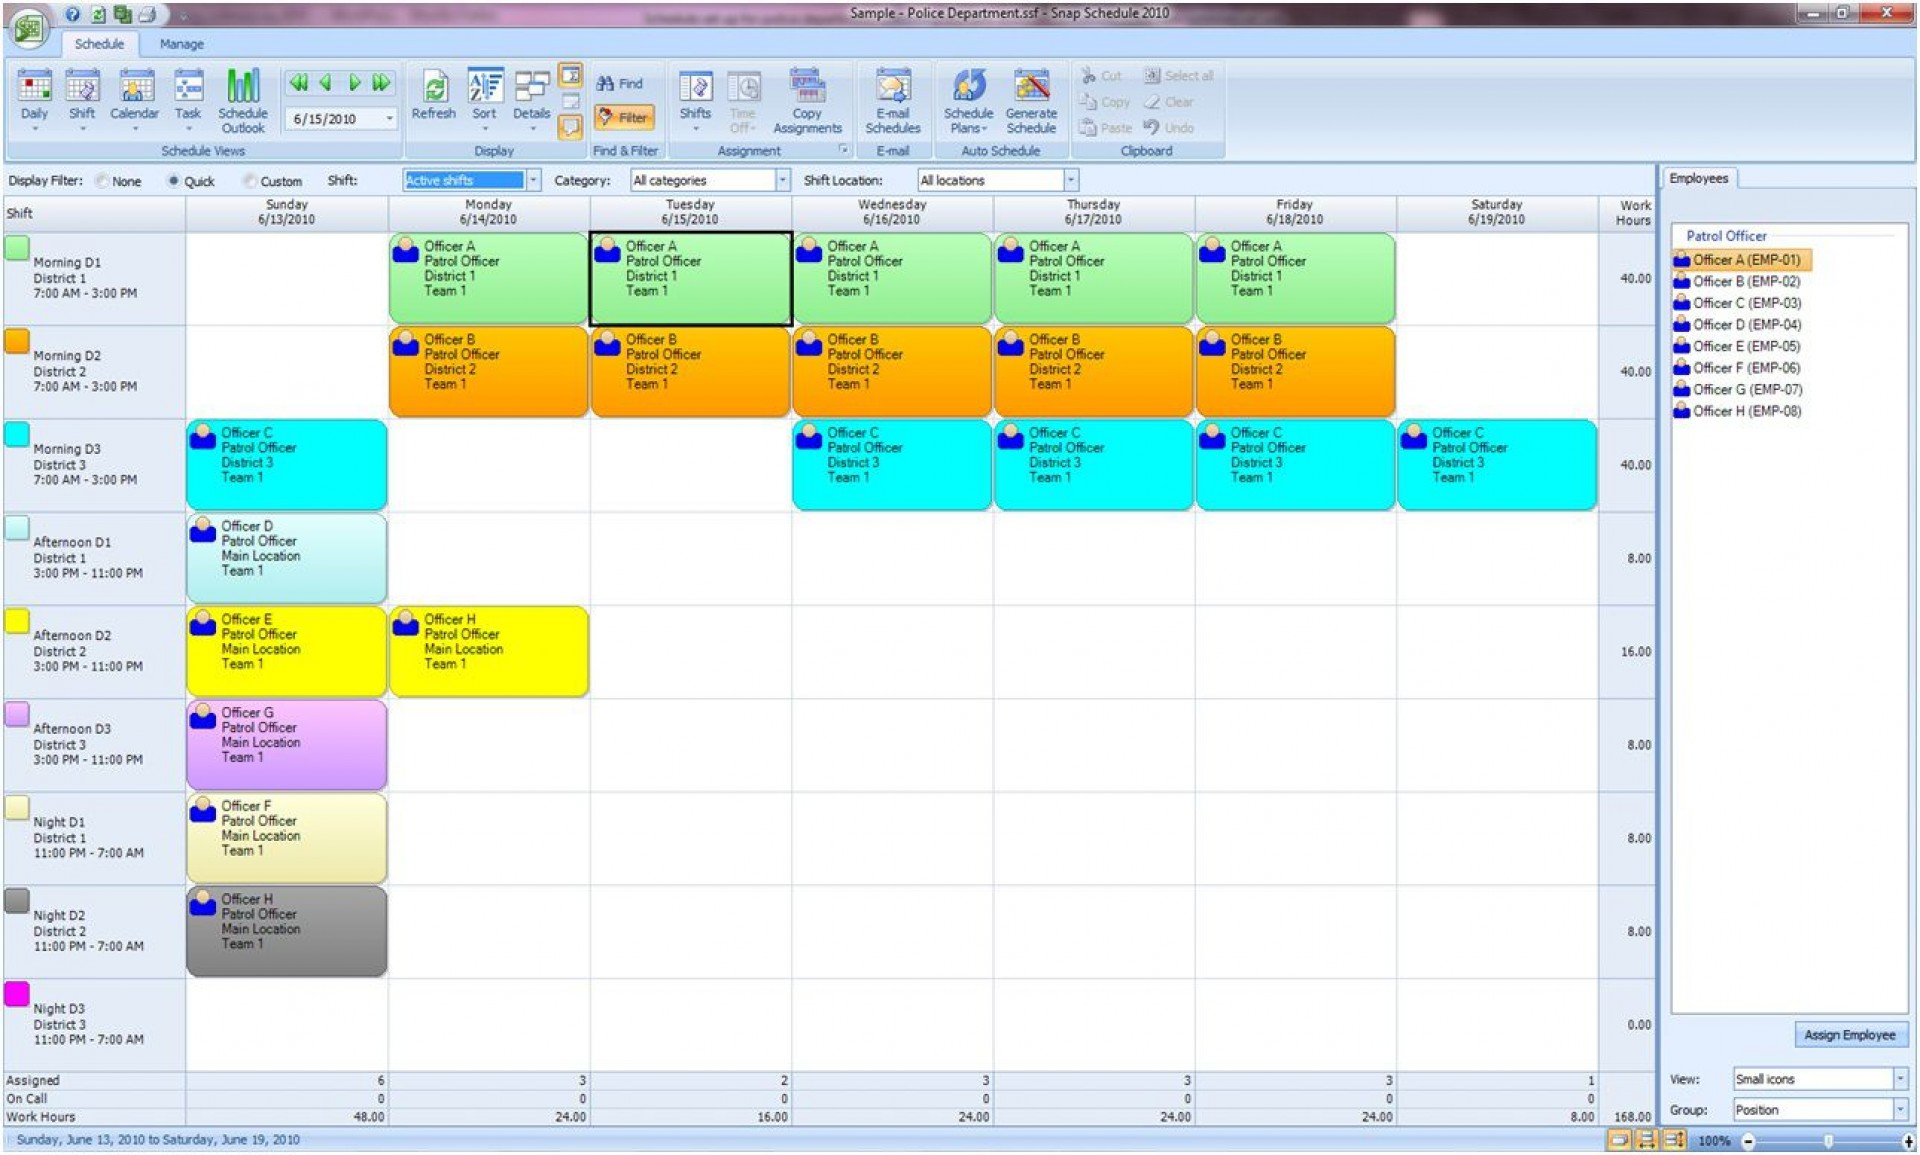 002 Striking 8 Hour Shift Schedule Template Sample  Best Rotating Example Work Day1920